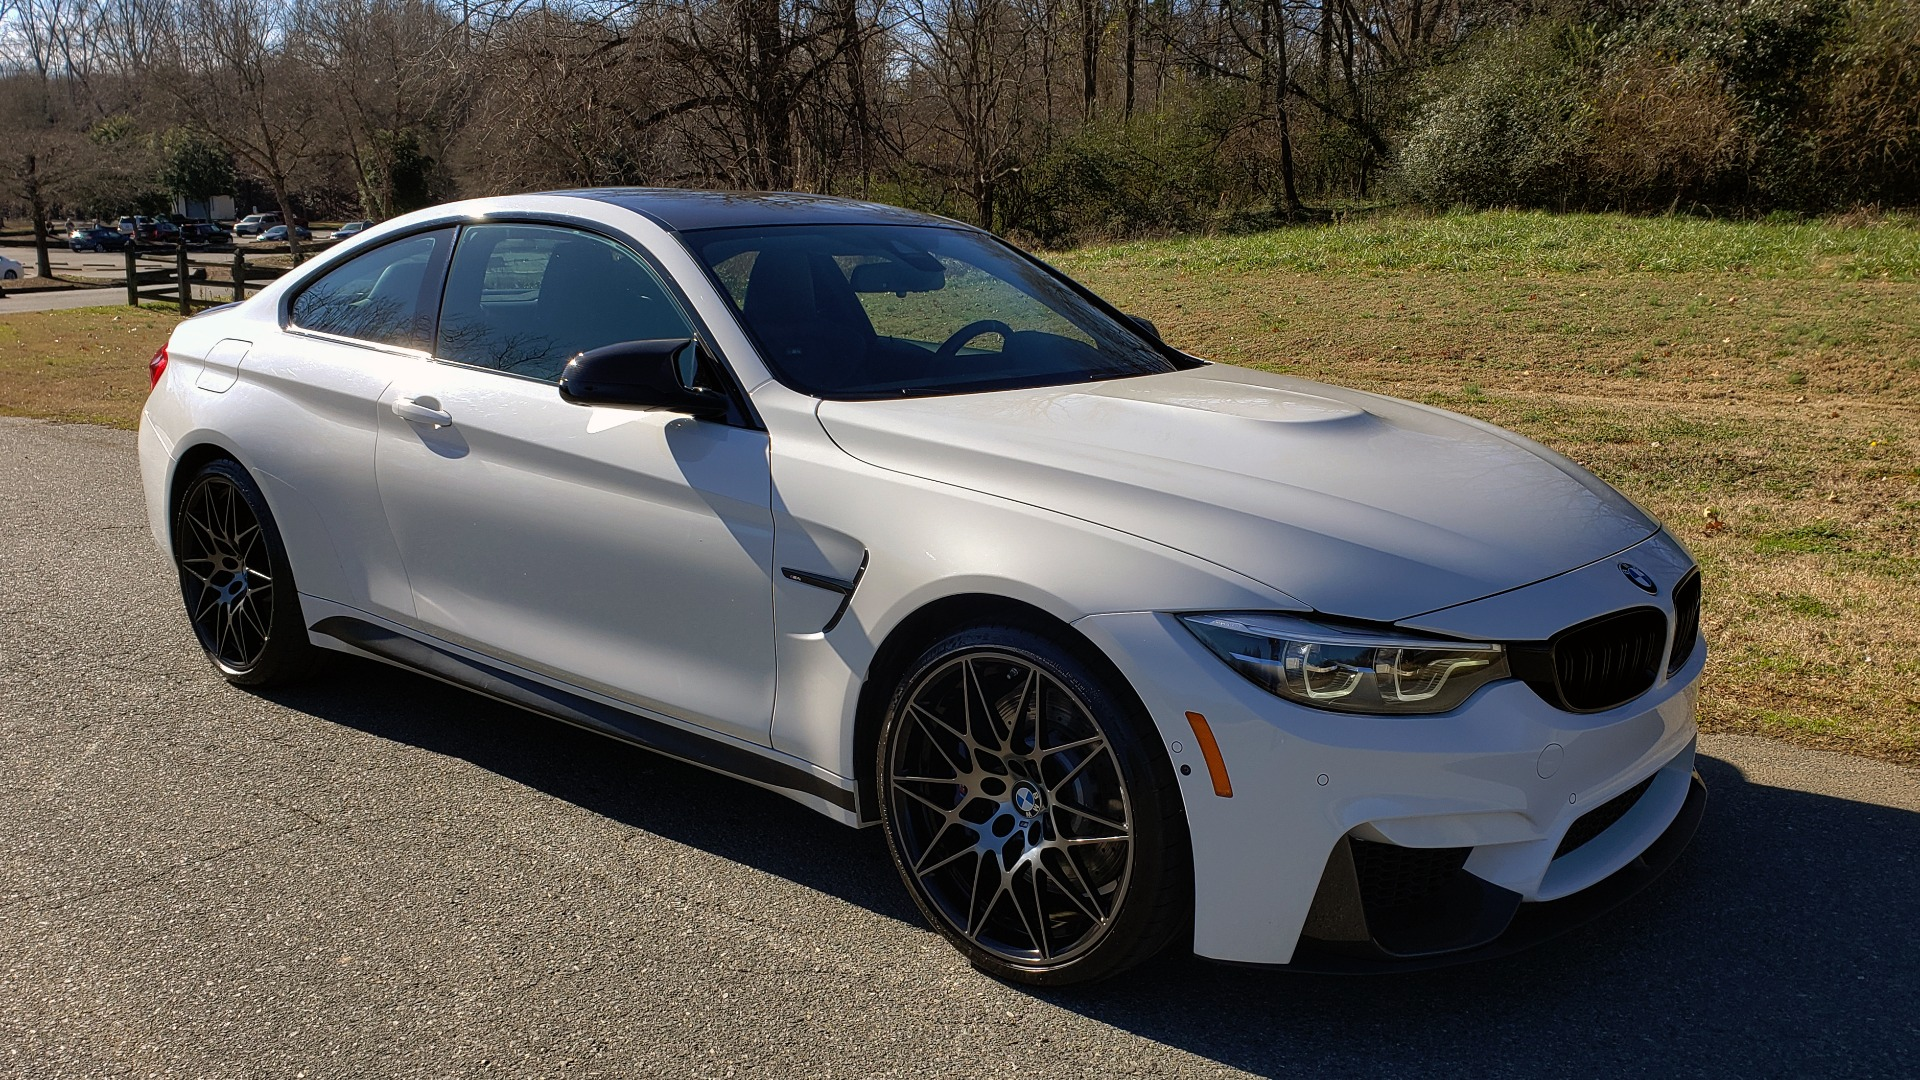 Used 2018 BMW M4 COMP PKG / EXEC / M-DRIVER / PARK CNTRL / ACTIVE BLIND SPOT for sale Sold at Formula Imports in Charlotte NC 28227 5